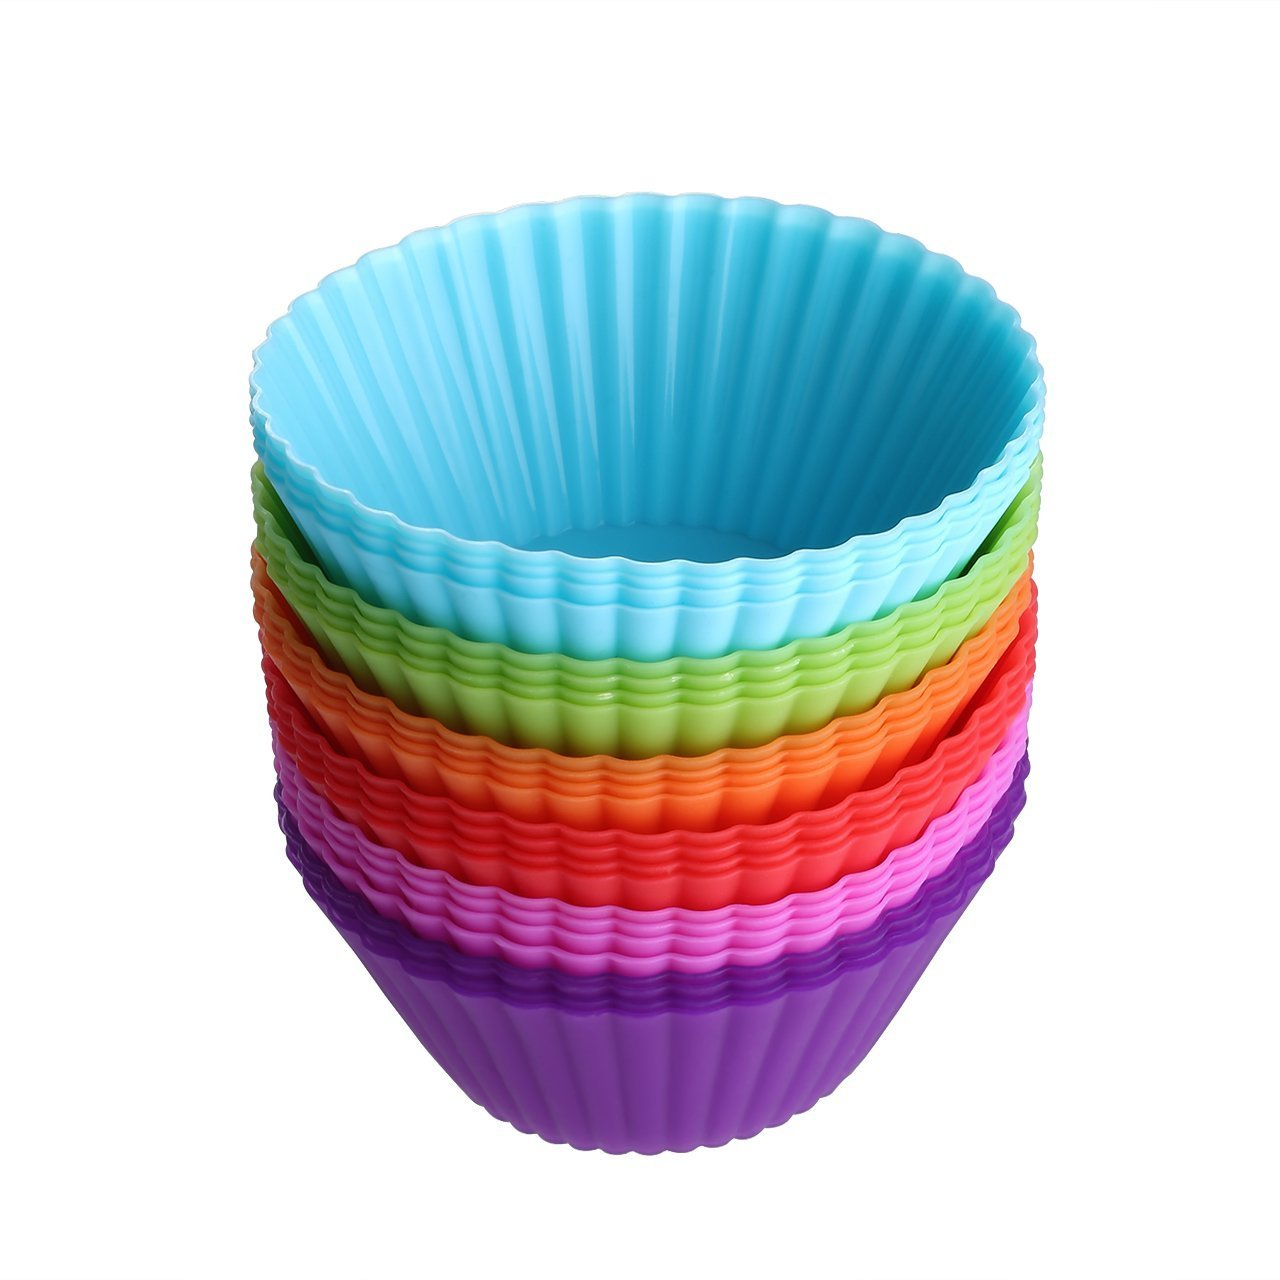 (24/Pack)Reusable Baking Cake Cups,Silicone Bakeware Baking Muffin Cups Cupcake Liners Moulds Sets, BPA Free and FDA Approved Muffin Molds Set (8 Colors) COFULL